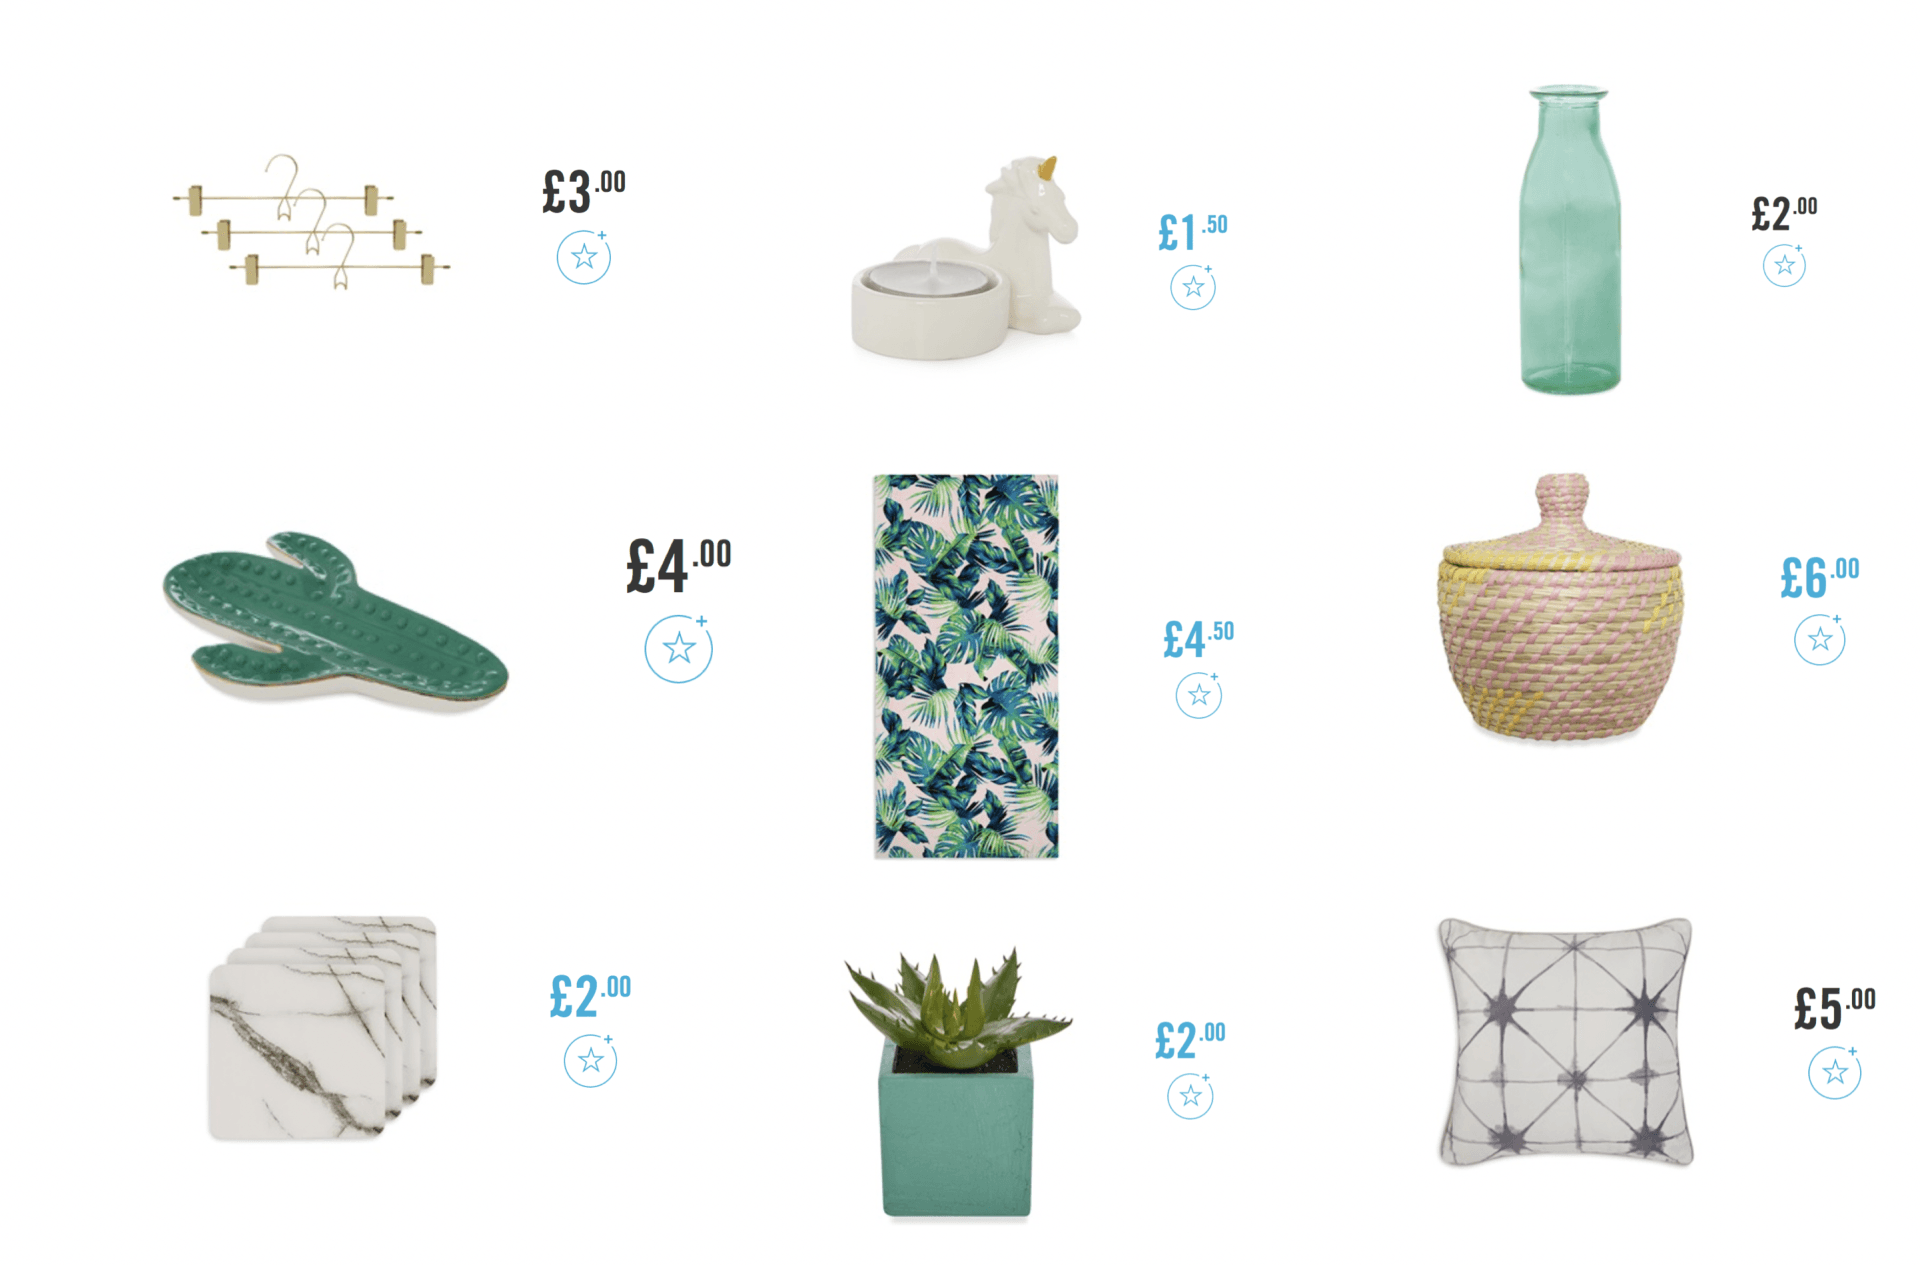 My top picks of interior accessories from high street retailers featuring Primark, H&M, The Range and Dunelm Mill